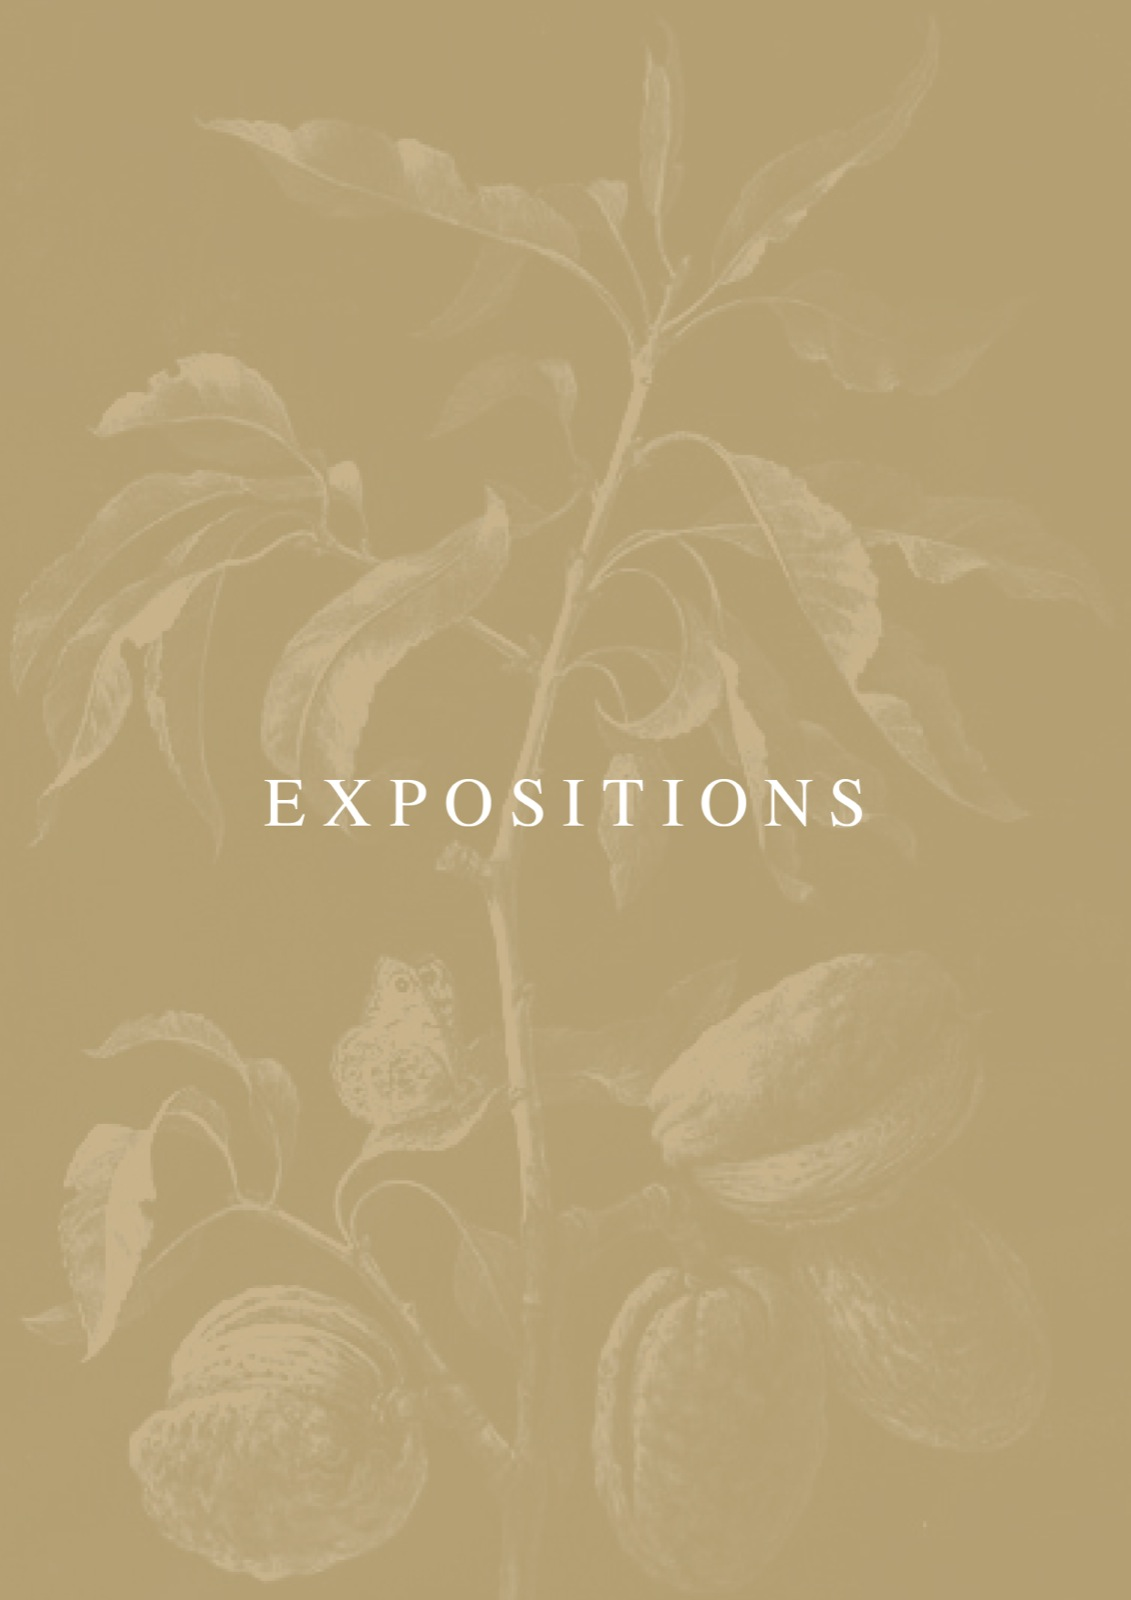 1001-expositions